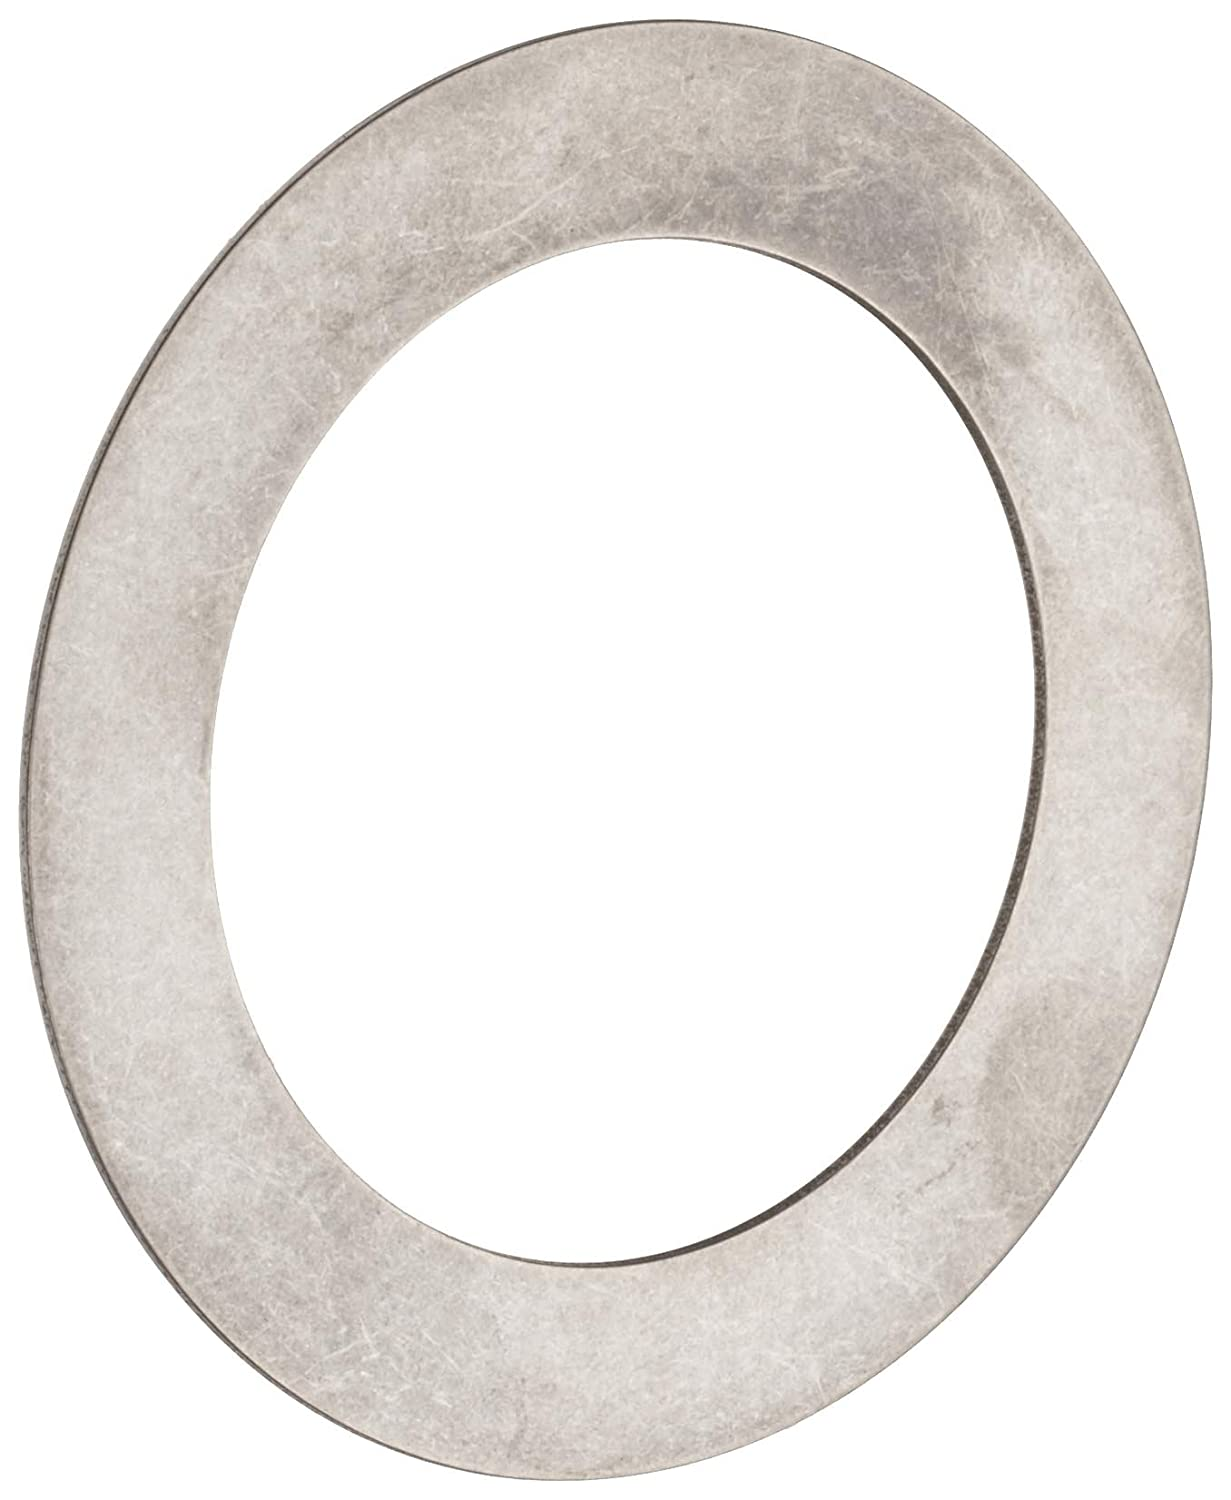 INA WS81104 Thrust Roller Bearing Shaft Washer, Metric, 20mm ID, 35mm OD, 2.750mm Width